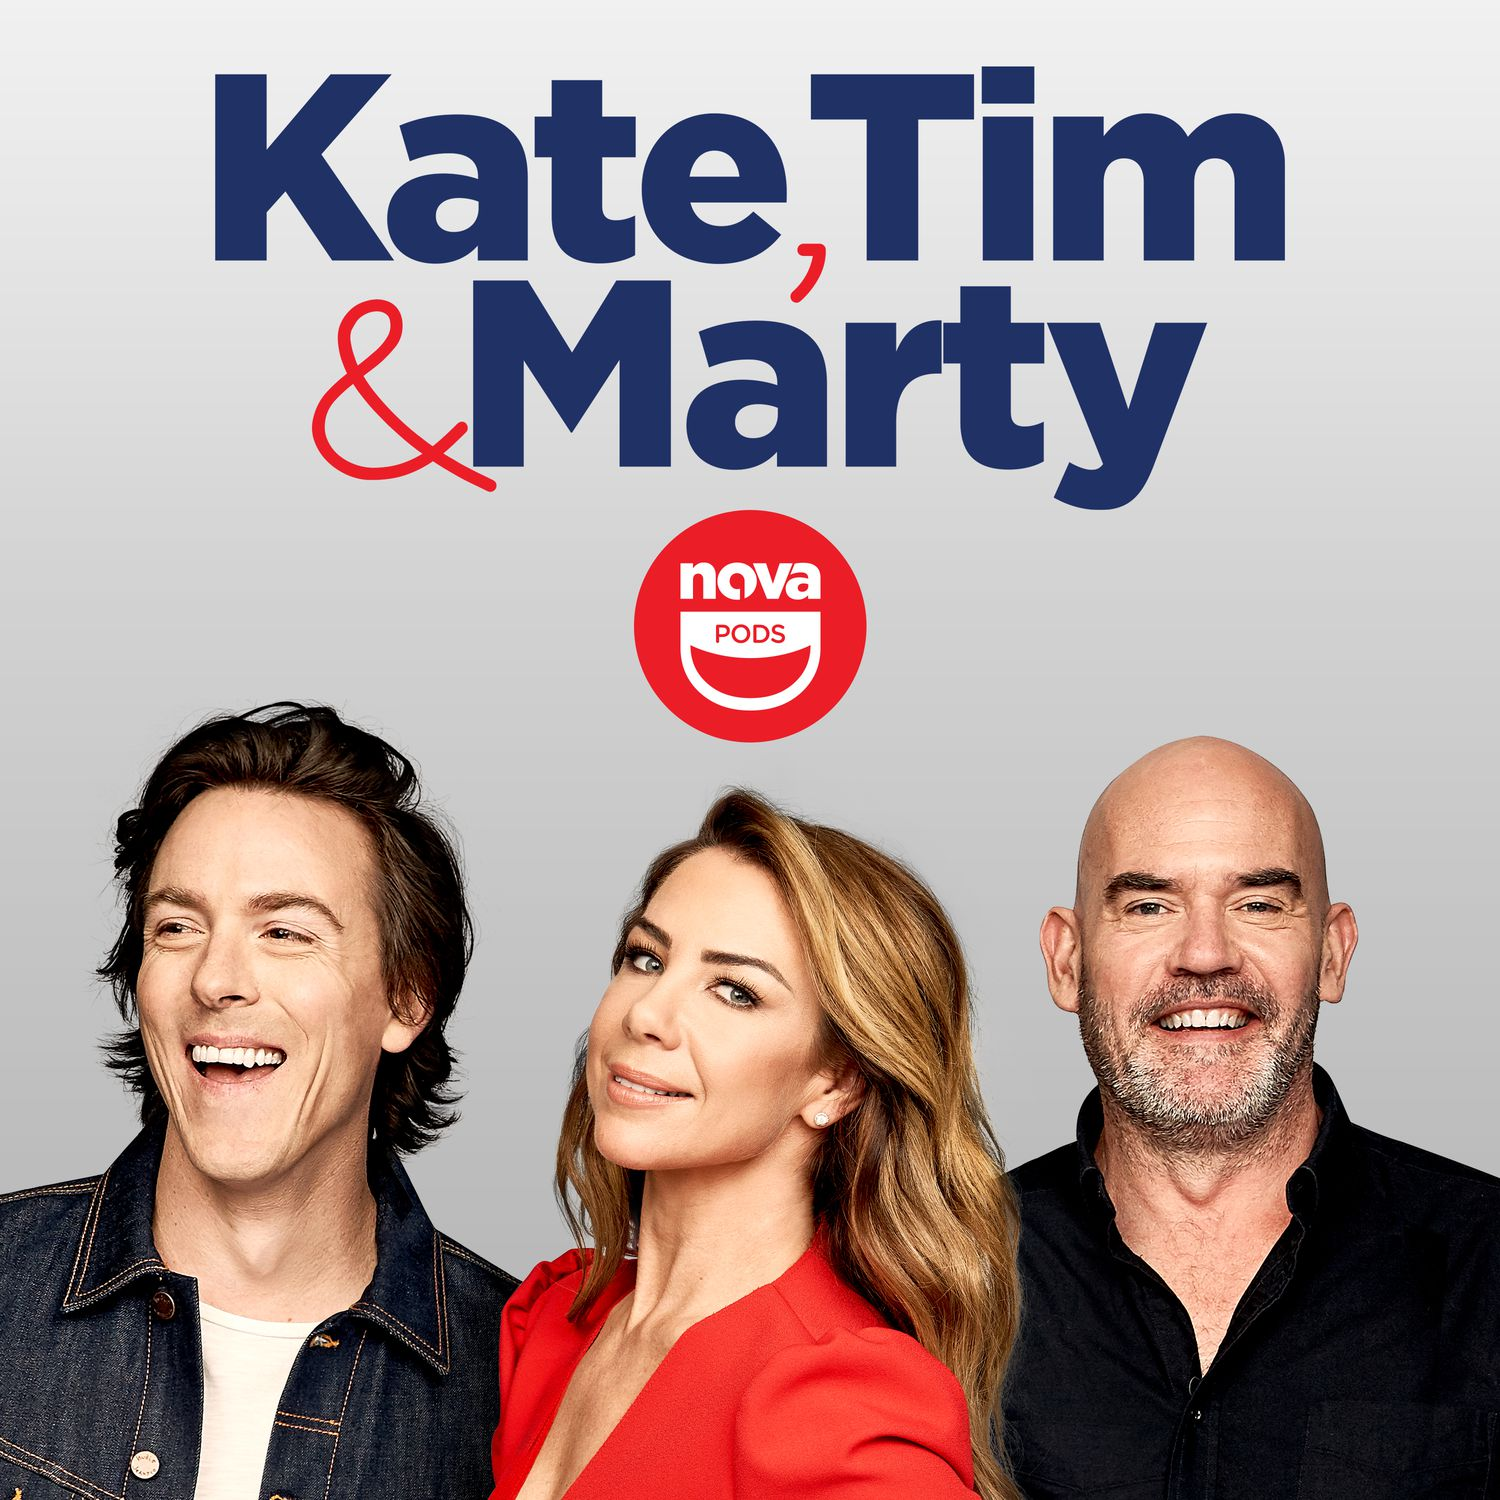 Kate, Tim & Marty